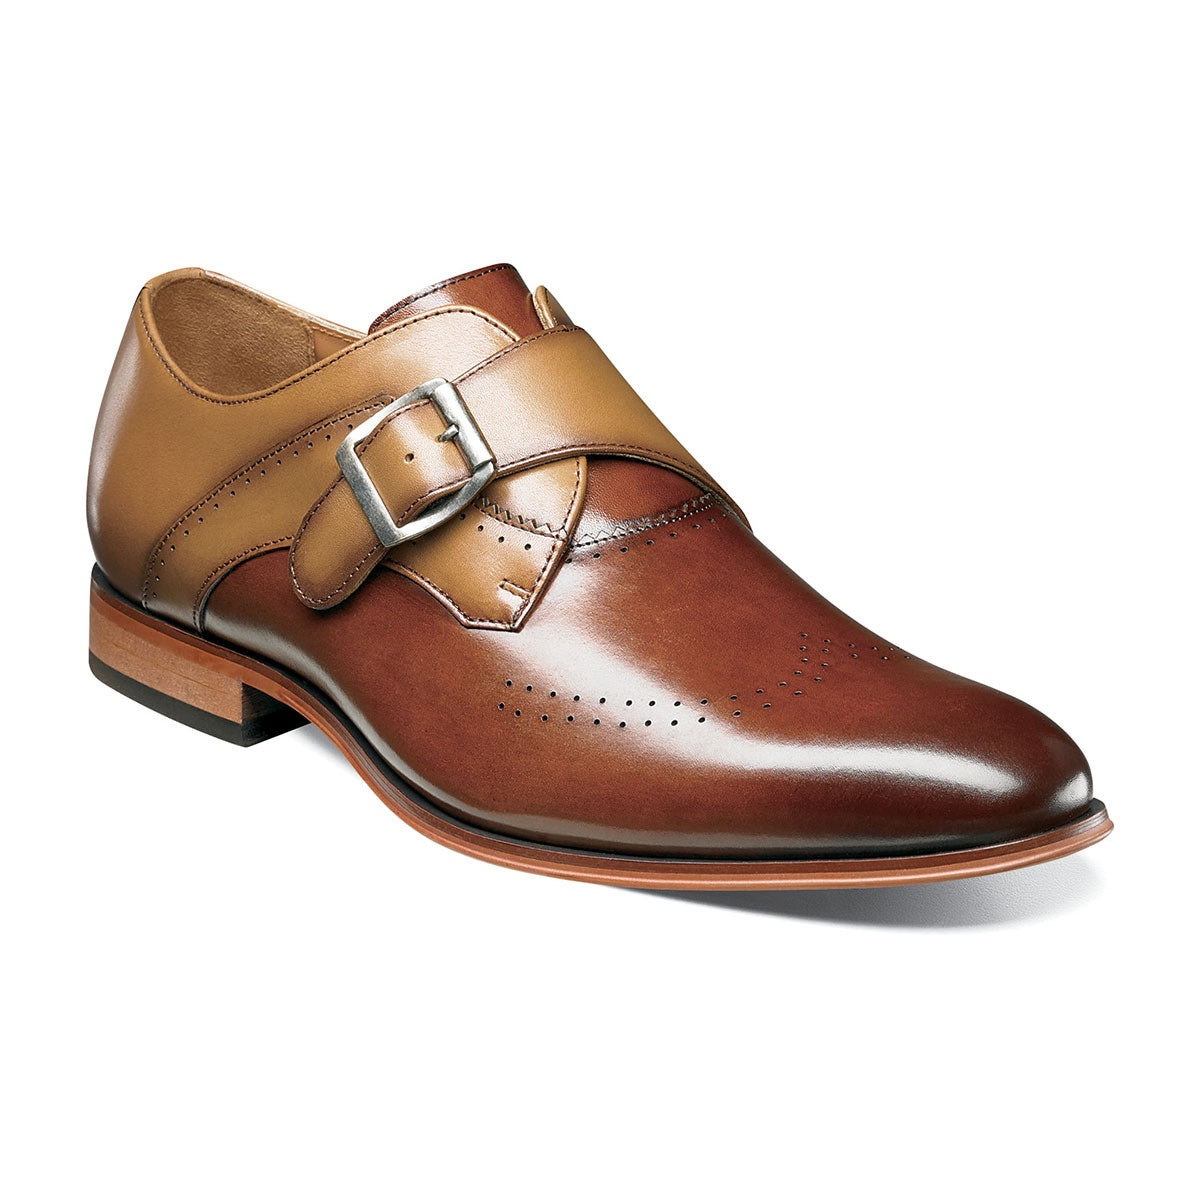 Stacy Adams Saxton Perfed Wingtip Monk Strap - Cognac Multi